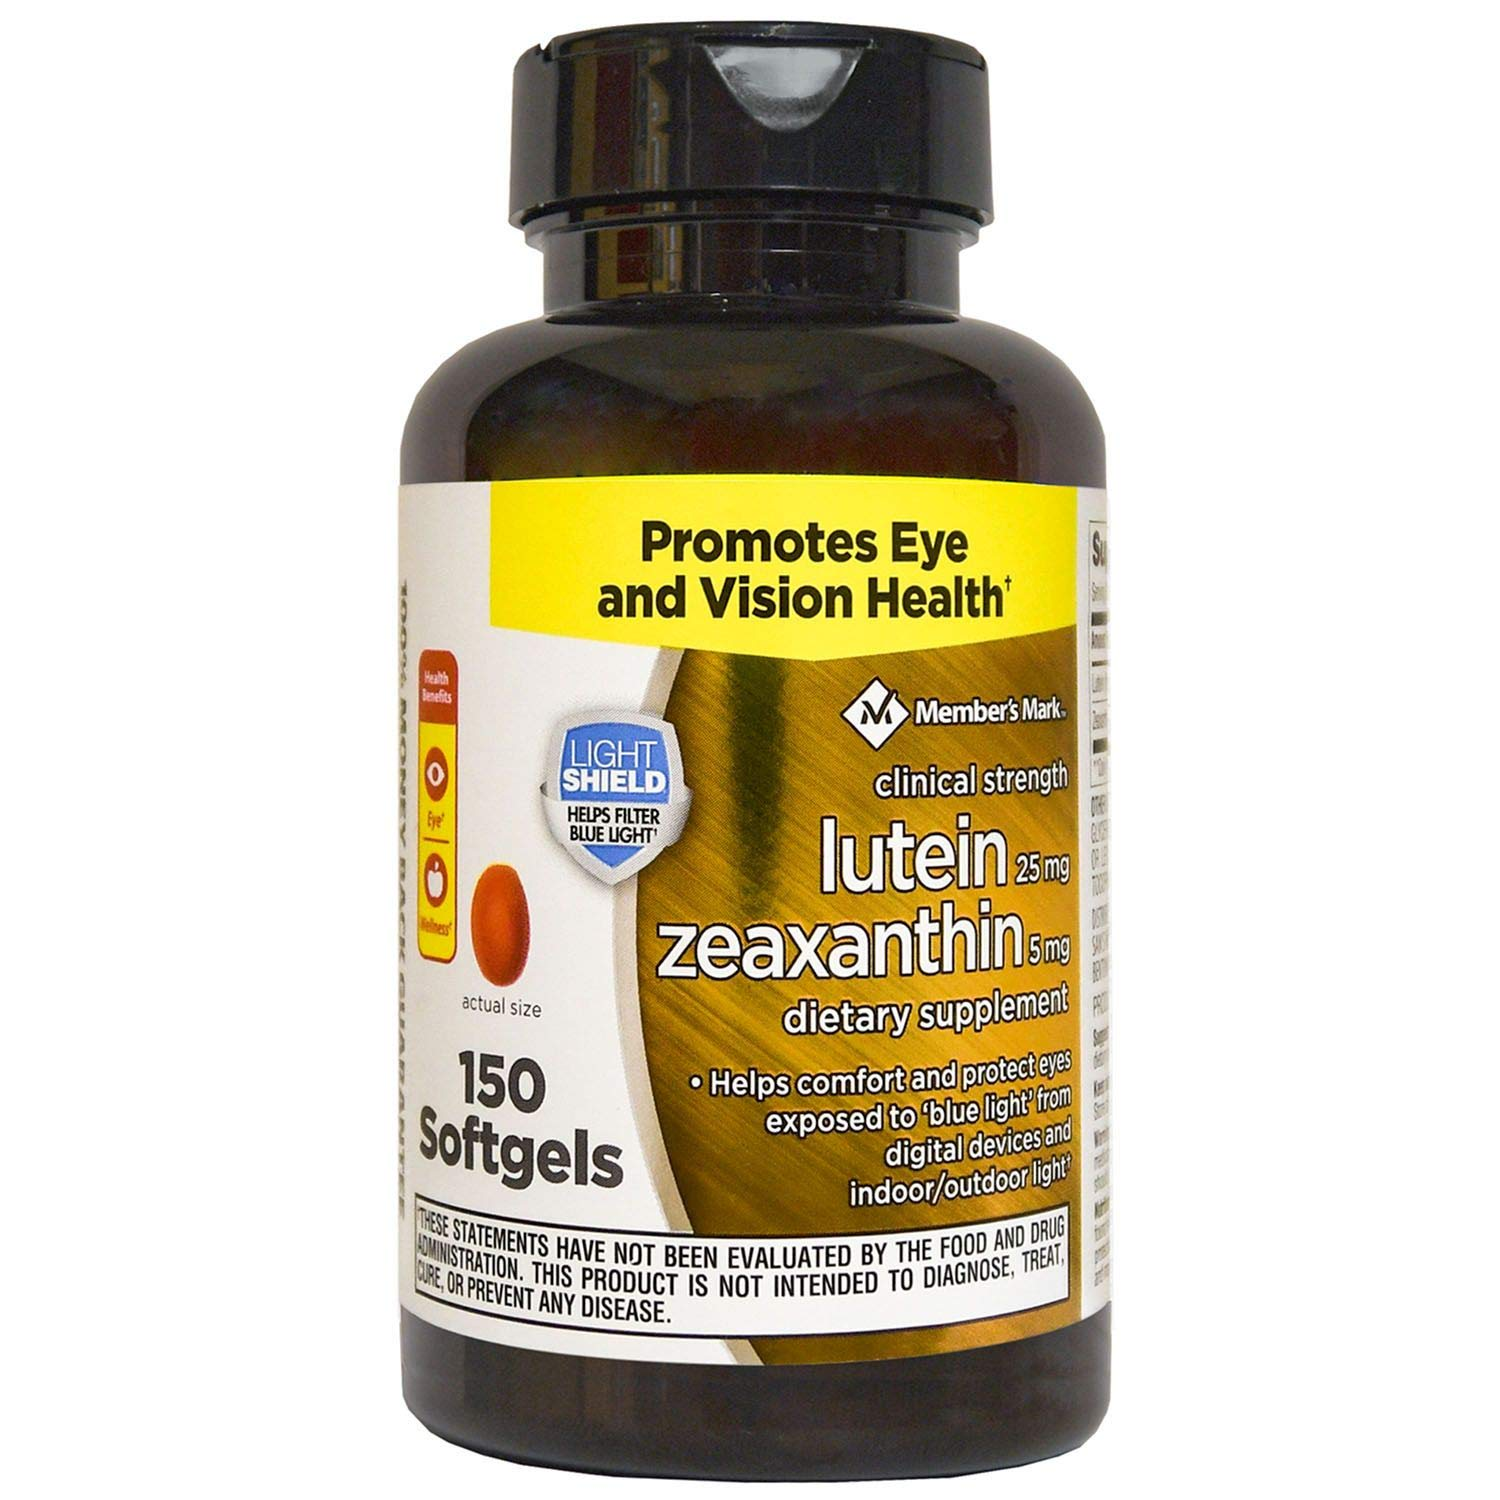 MM Lutein & Zeaxanthin 25MG,150 ct. (pack of 6)